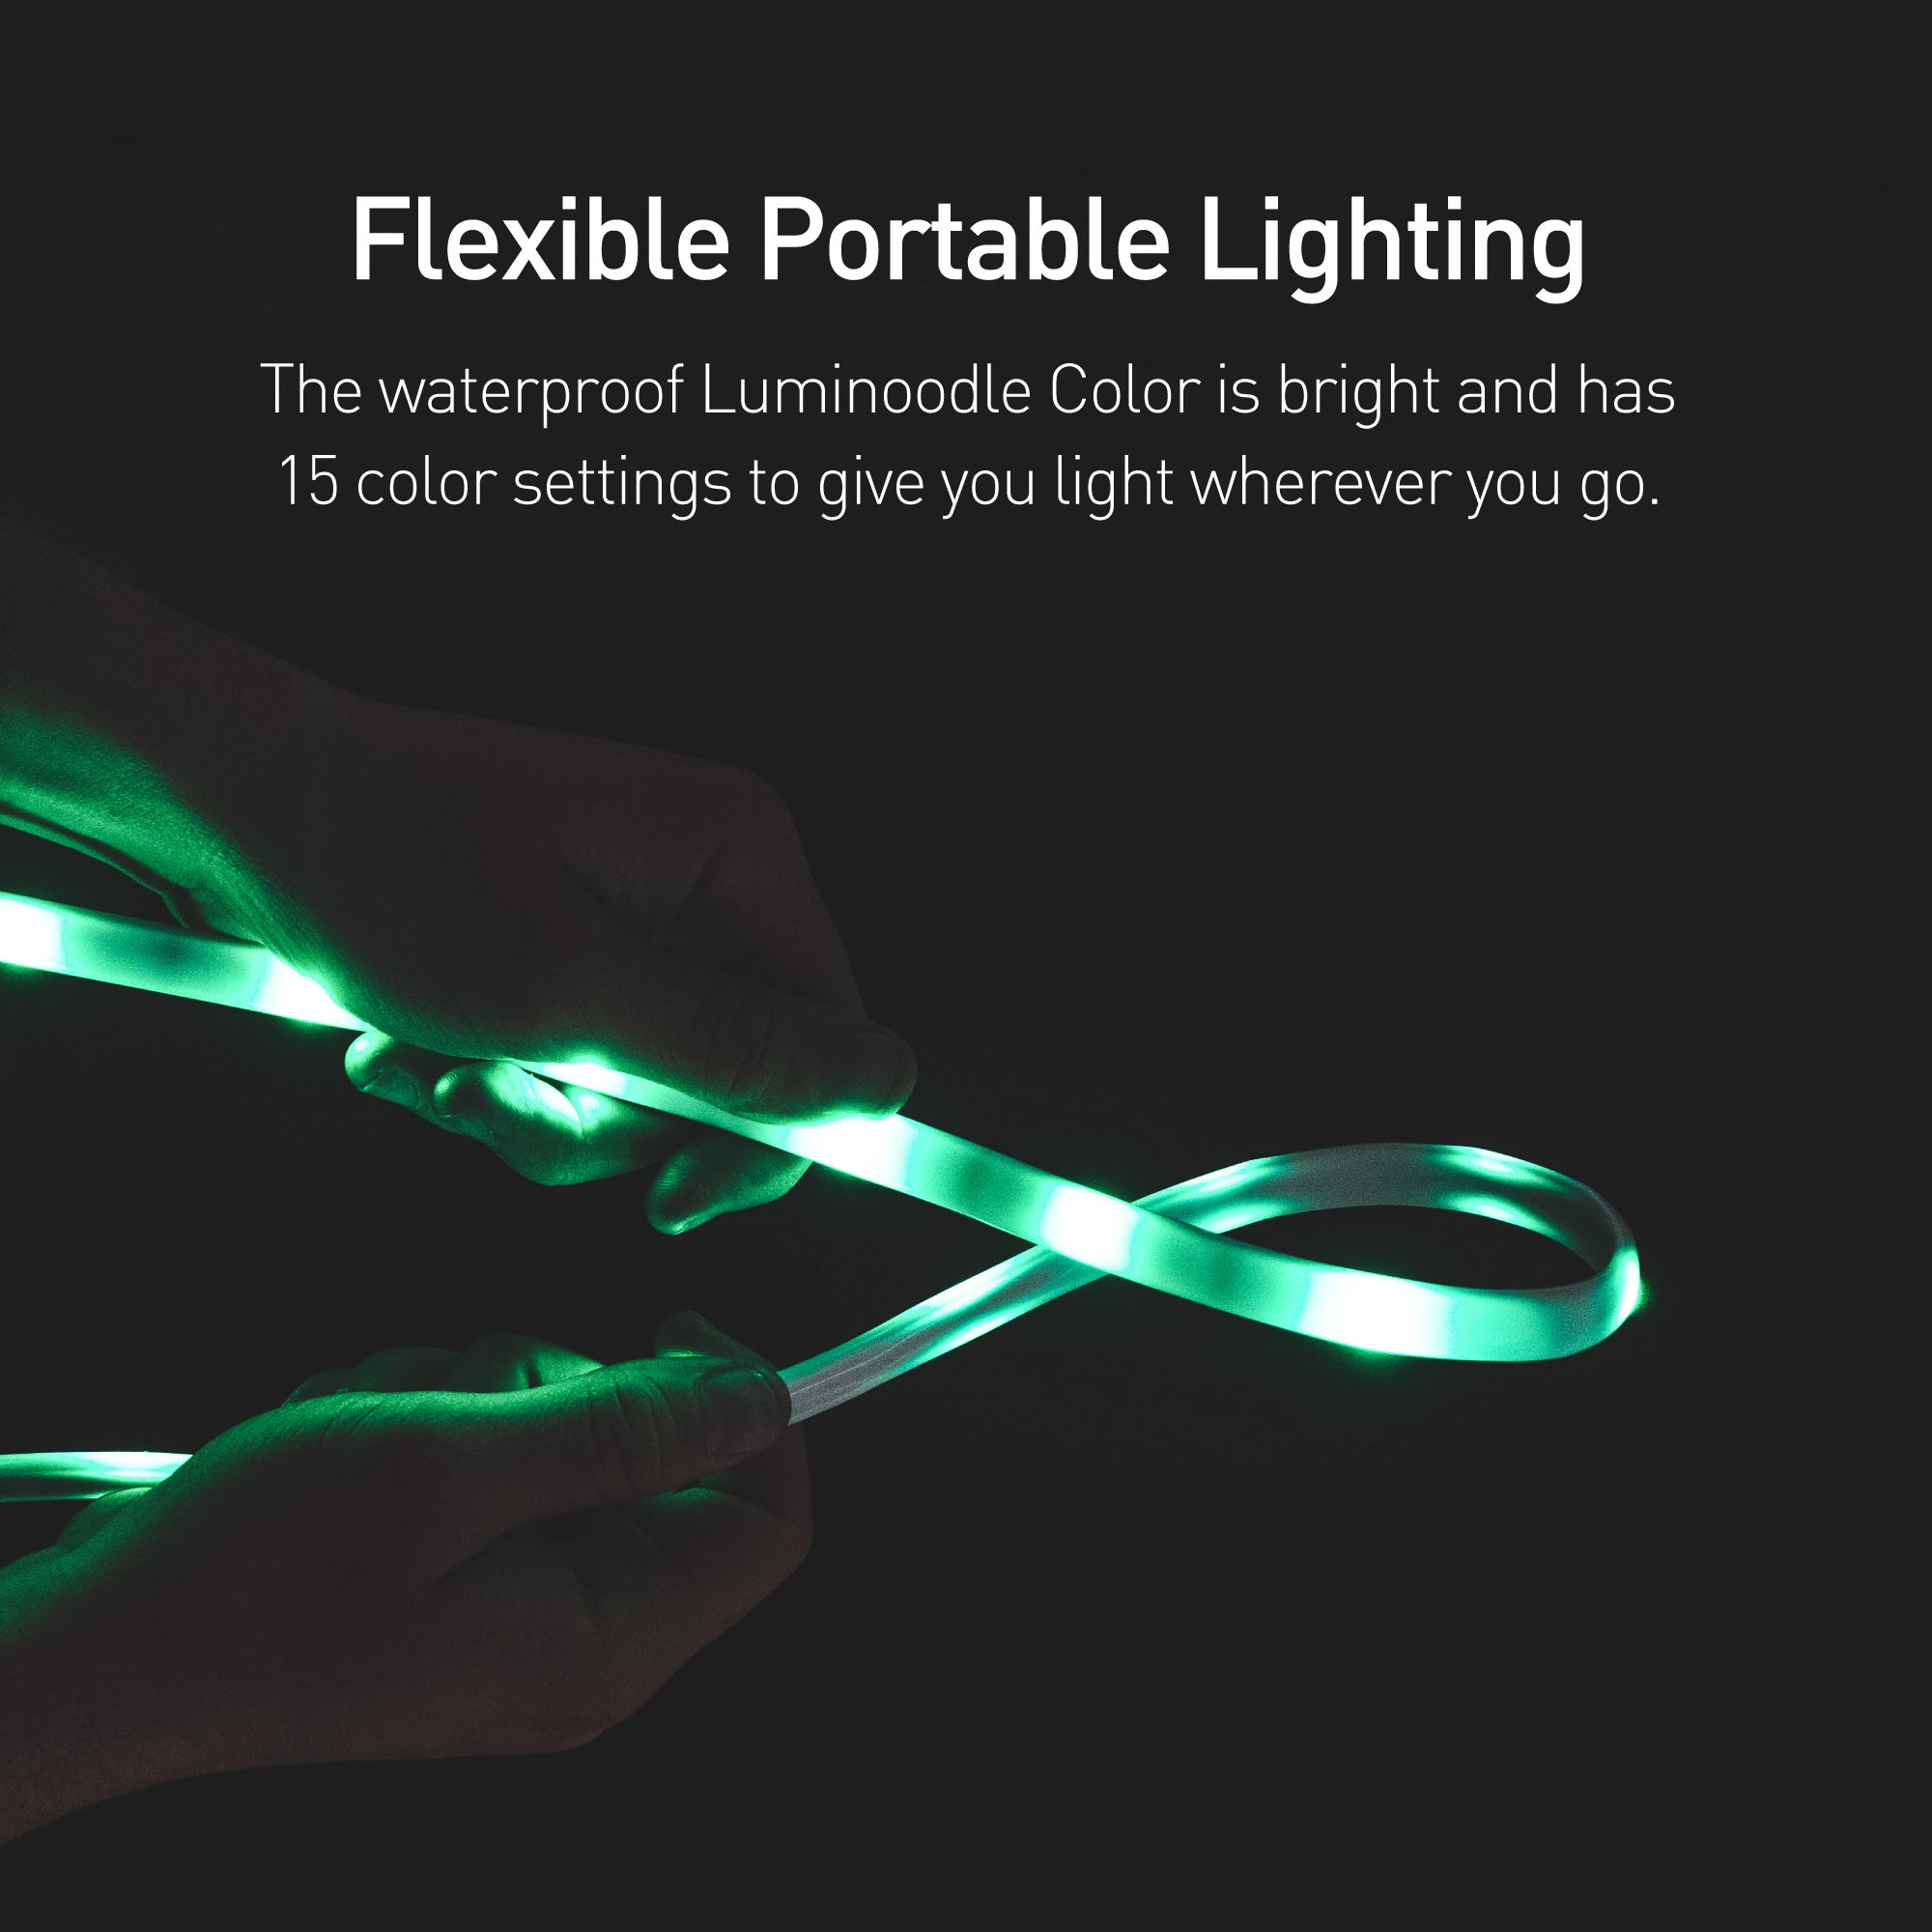 Luminoodle color waterproof led light ropes power practical luminoodle color versatile rope light and lantern kit aloadofball Images